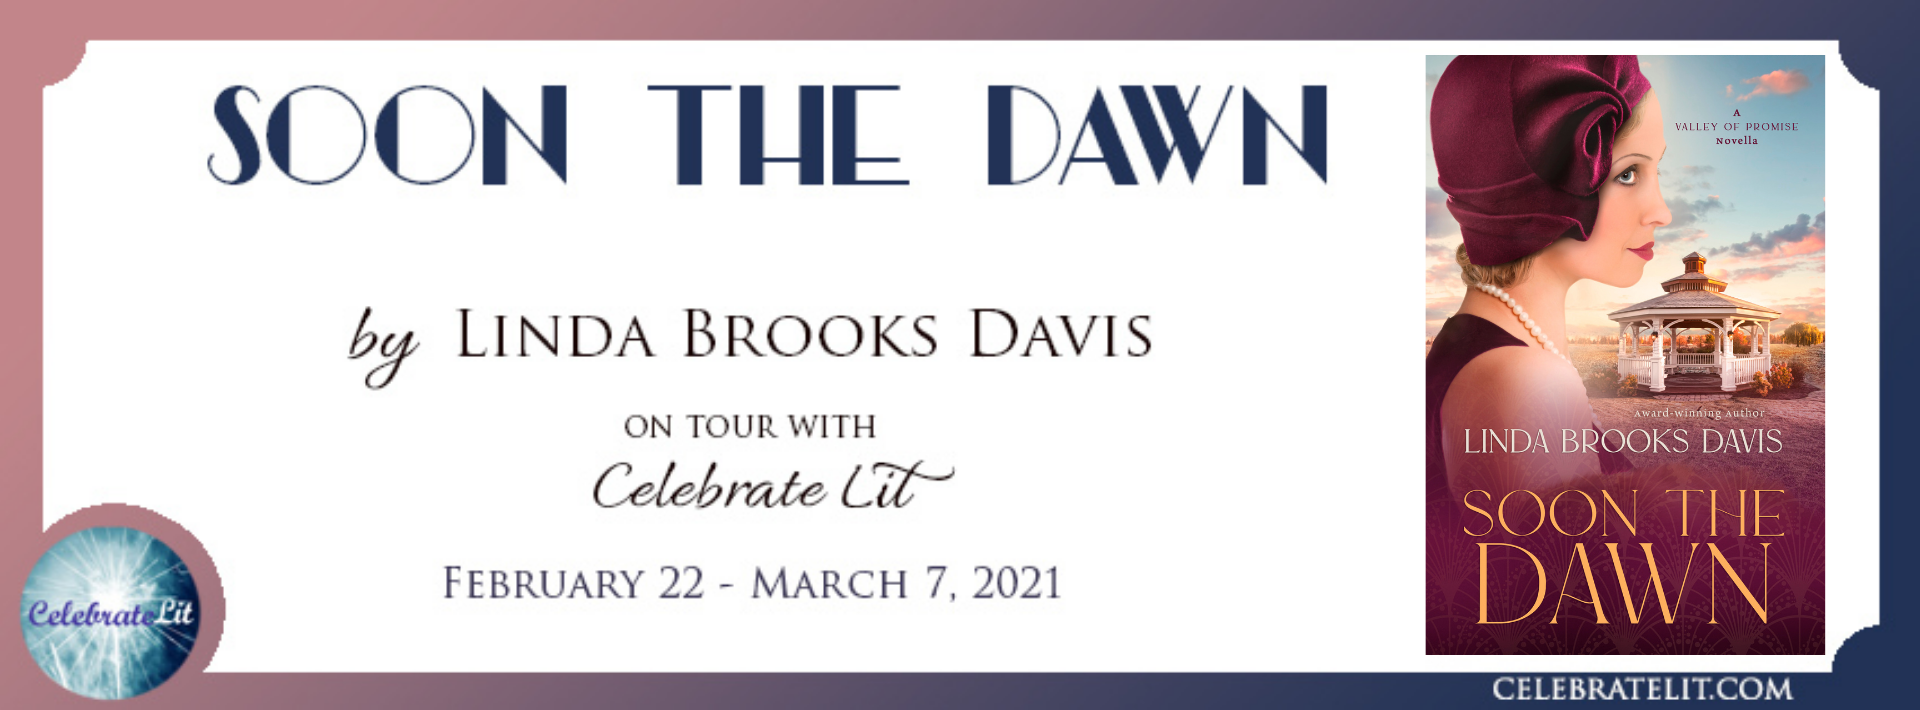 Soon the Dawn on tour with Celebrate Lit and featured on CarpeDiem.fyi